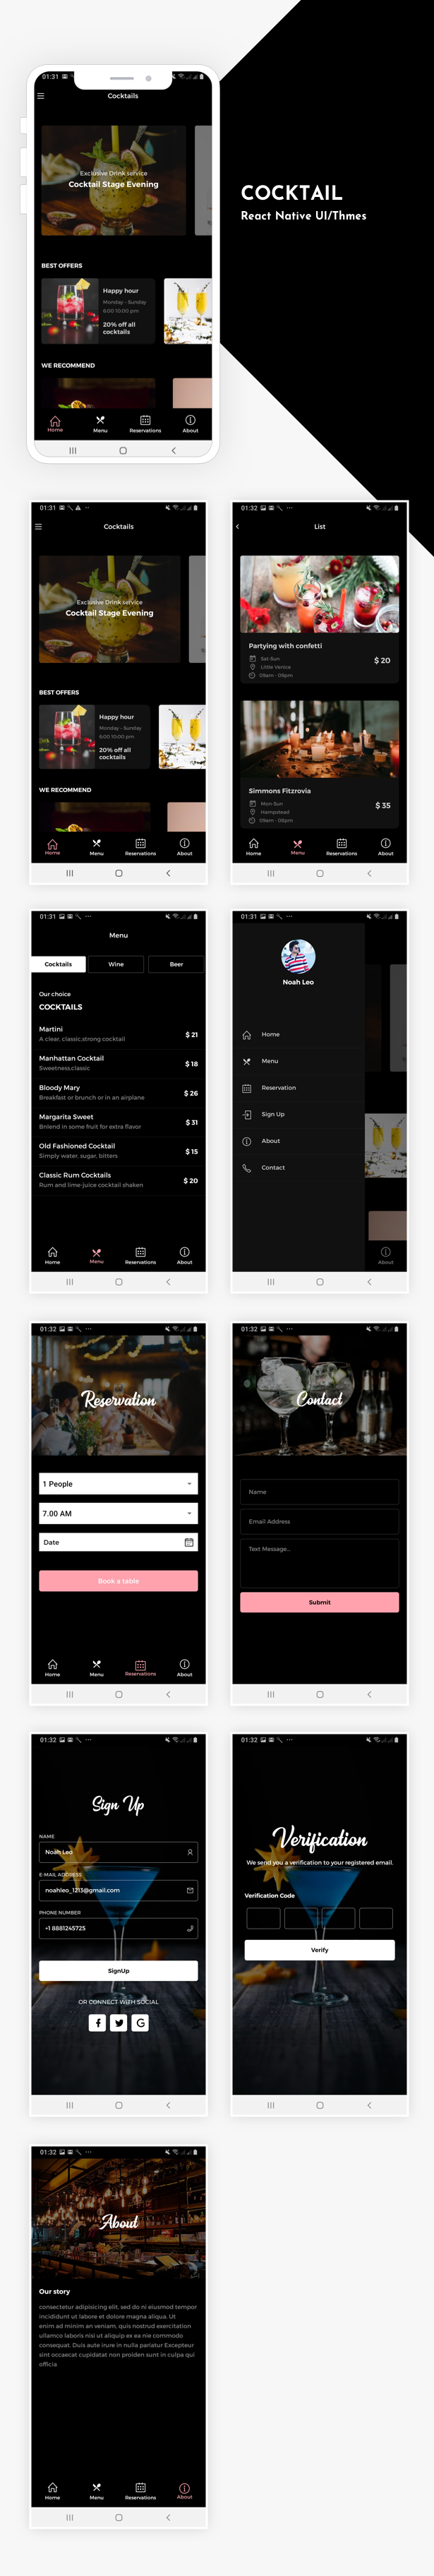 Cocktail Bar App UI